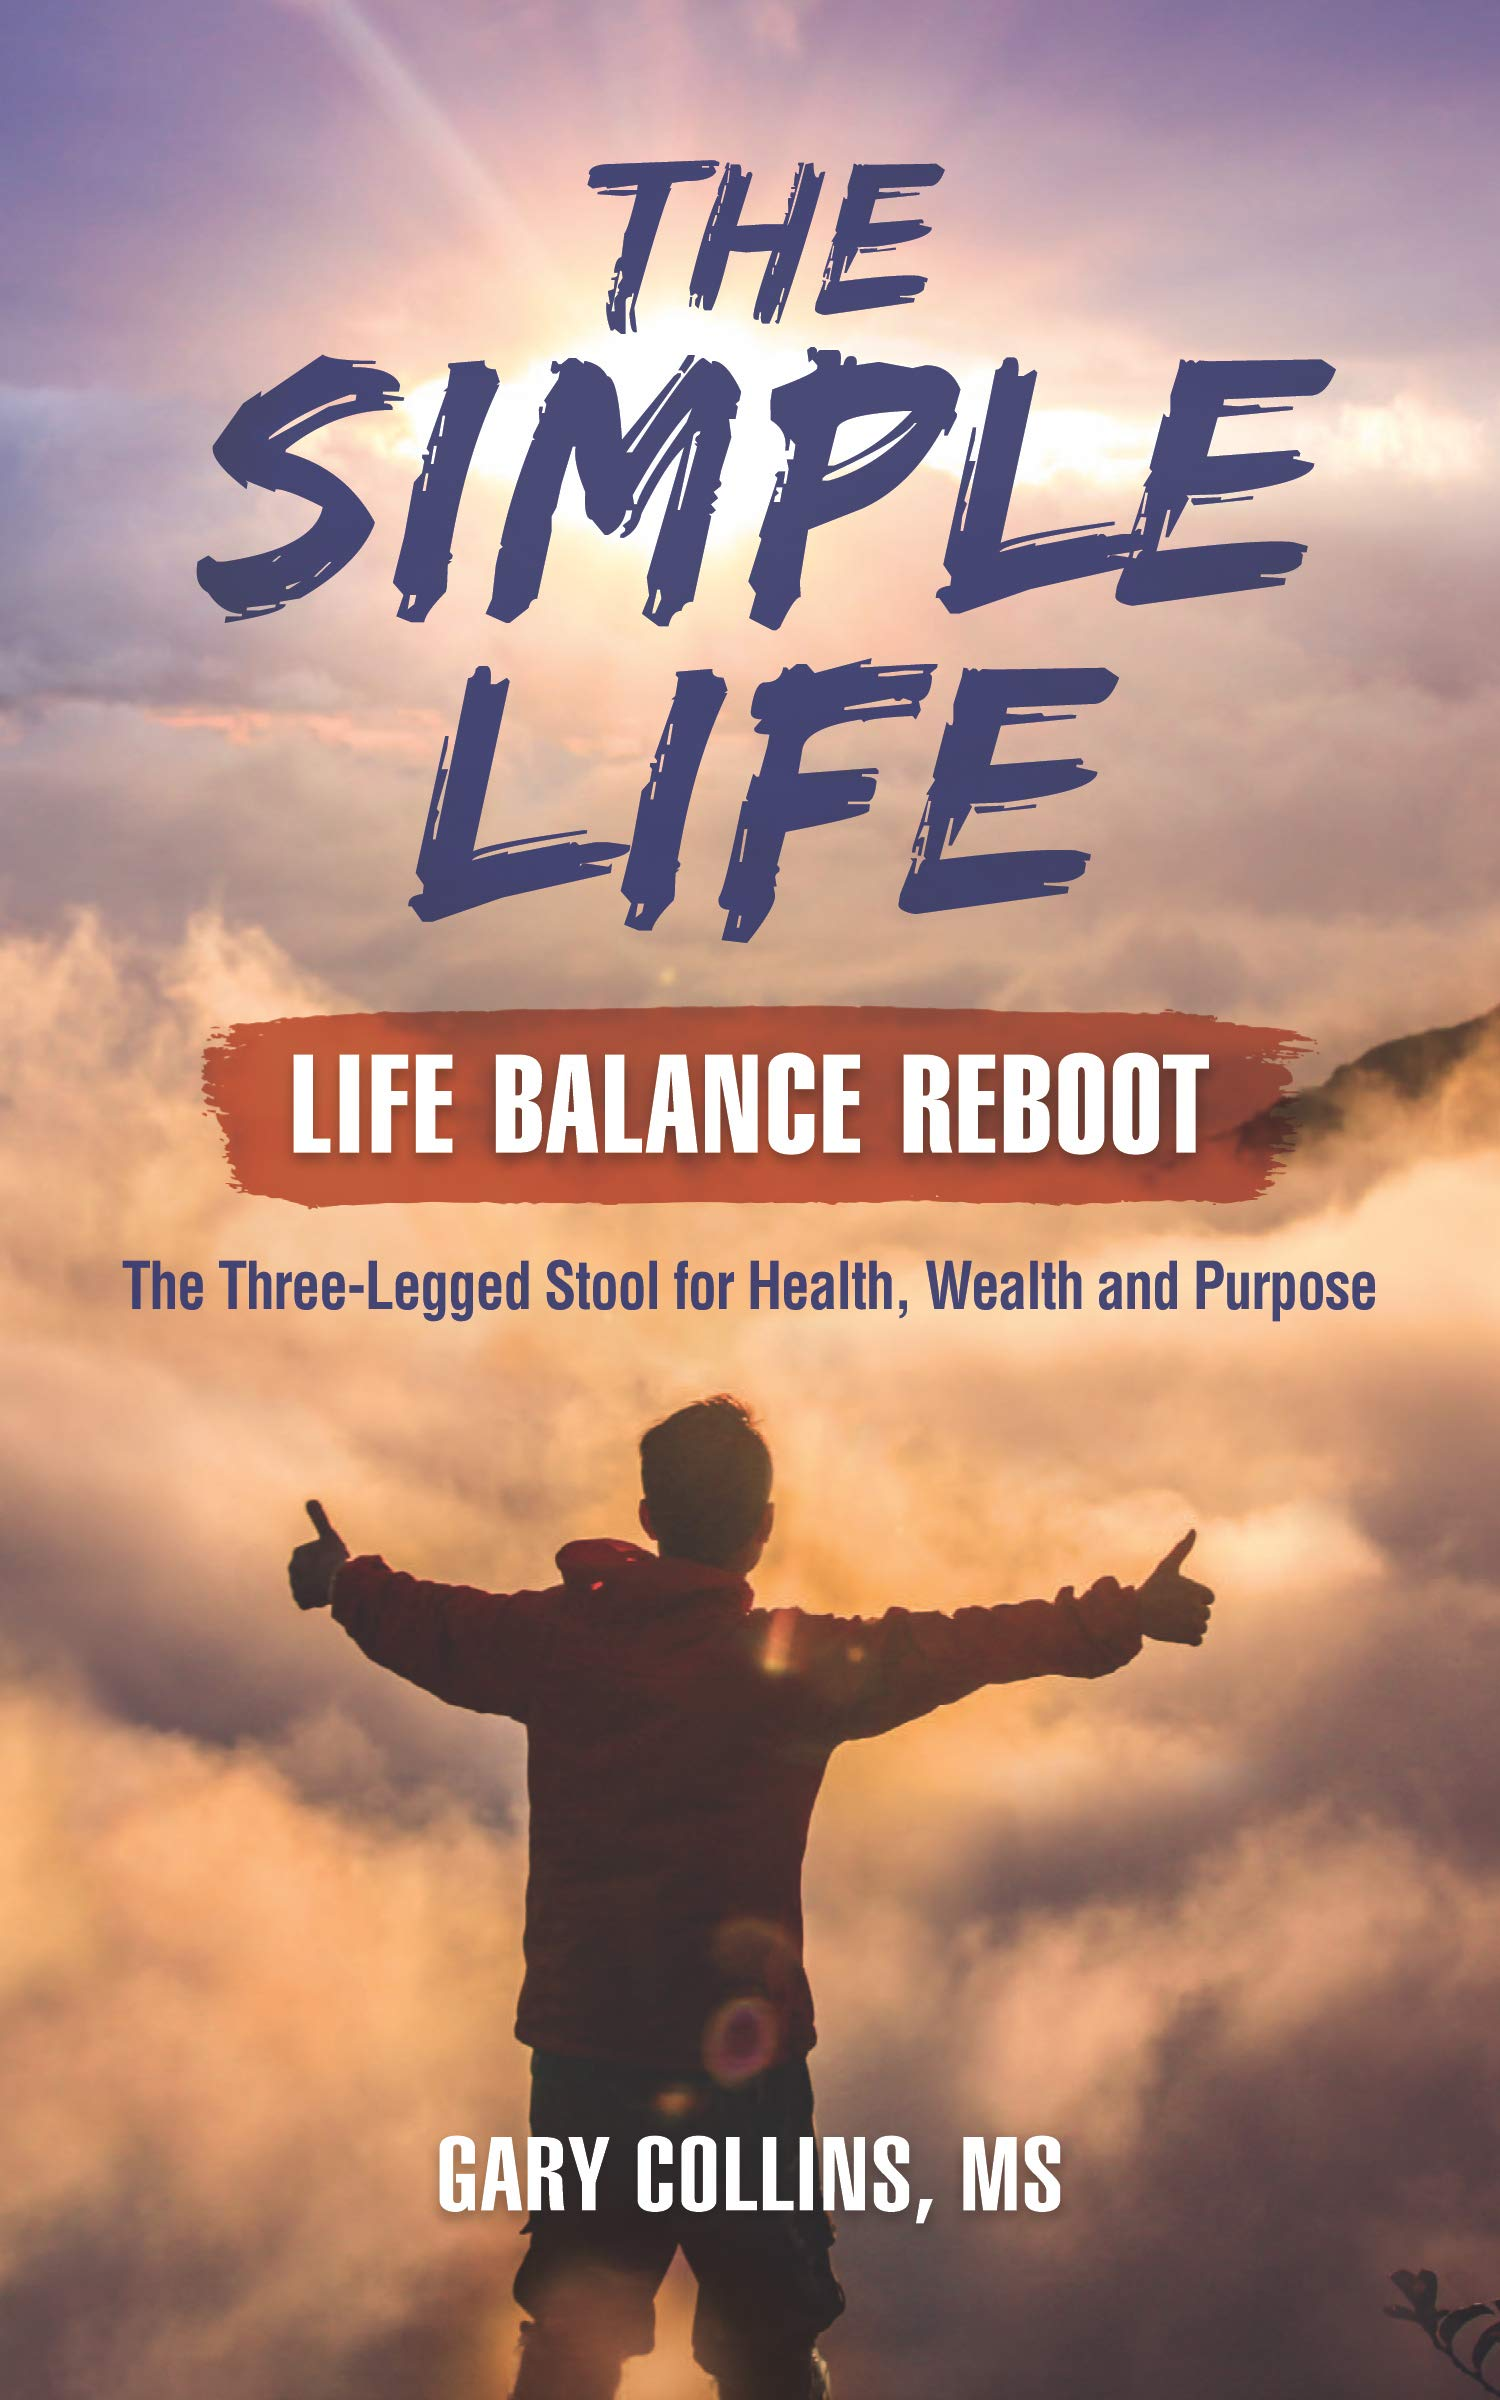 The Simple Life - Life Balance Reboot: The Three-Legged Stool for Health, Wealth and Purpose